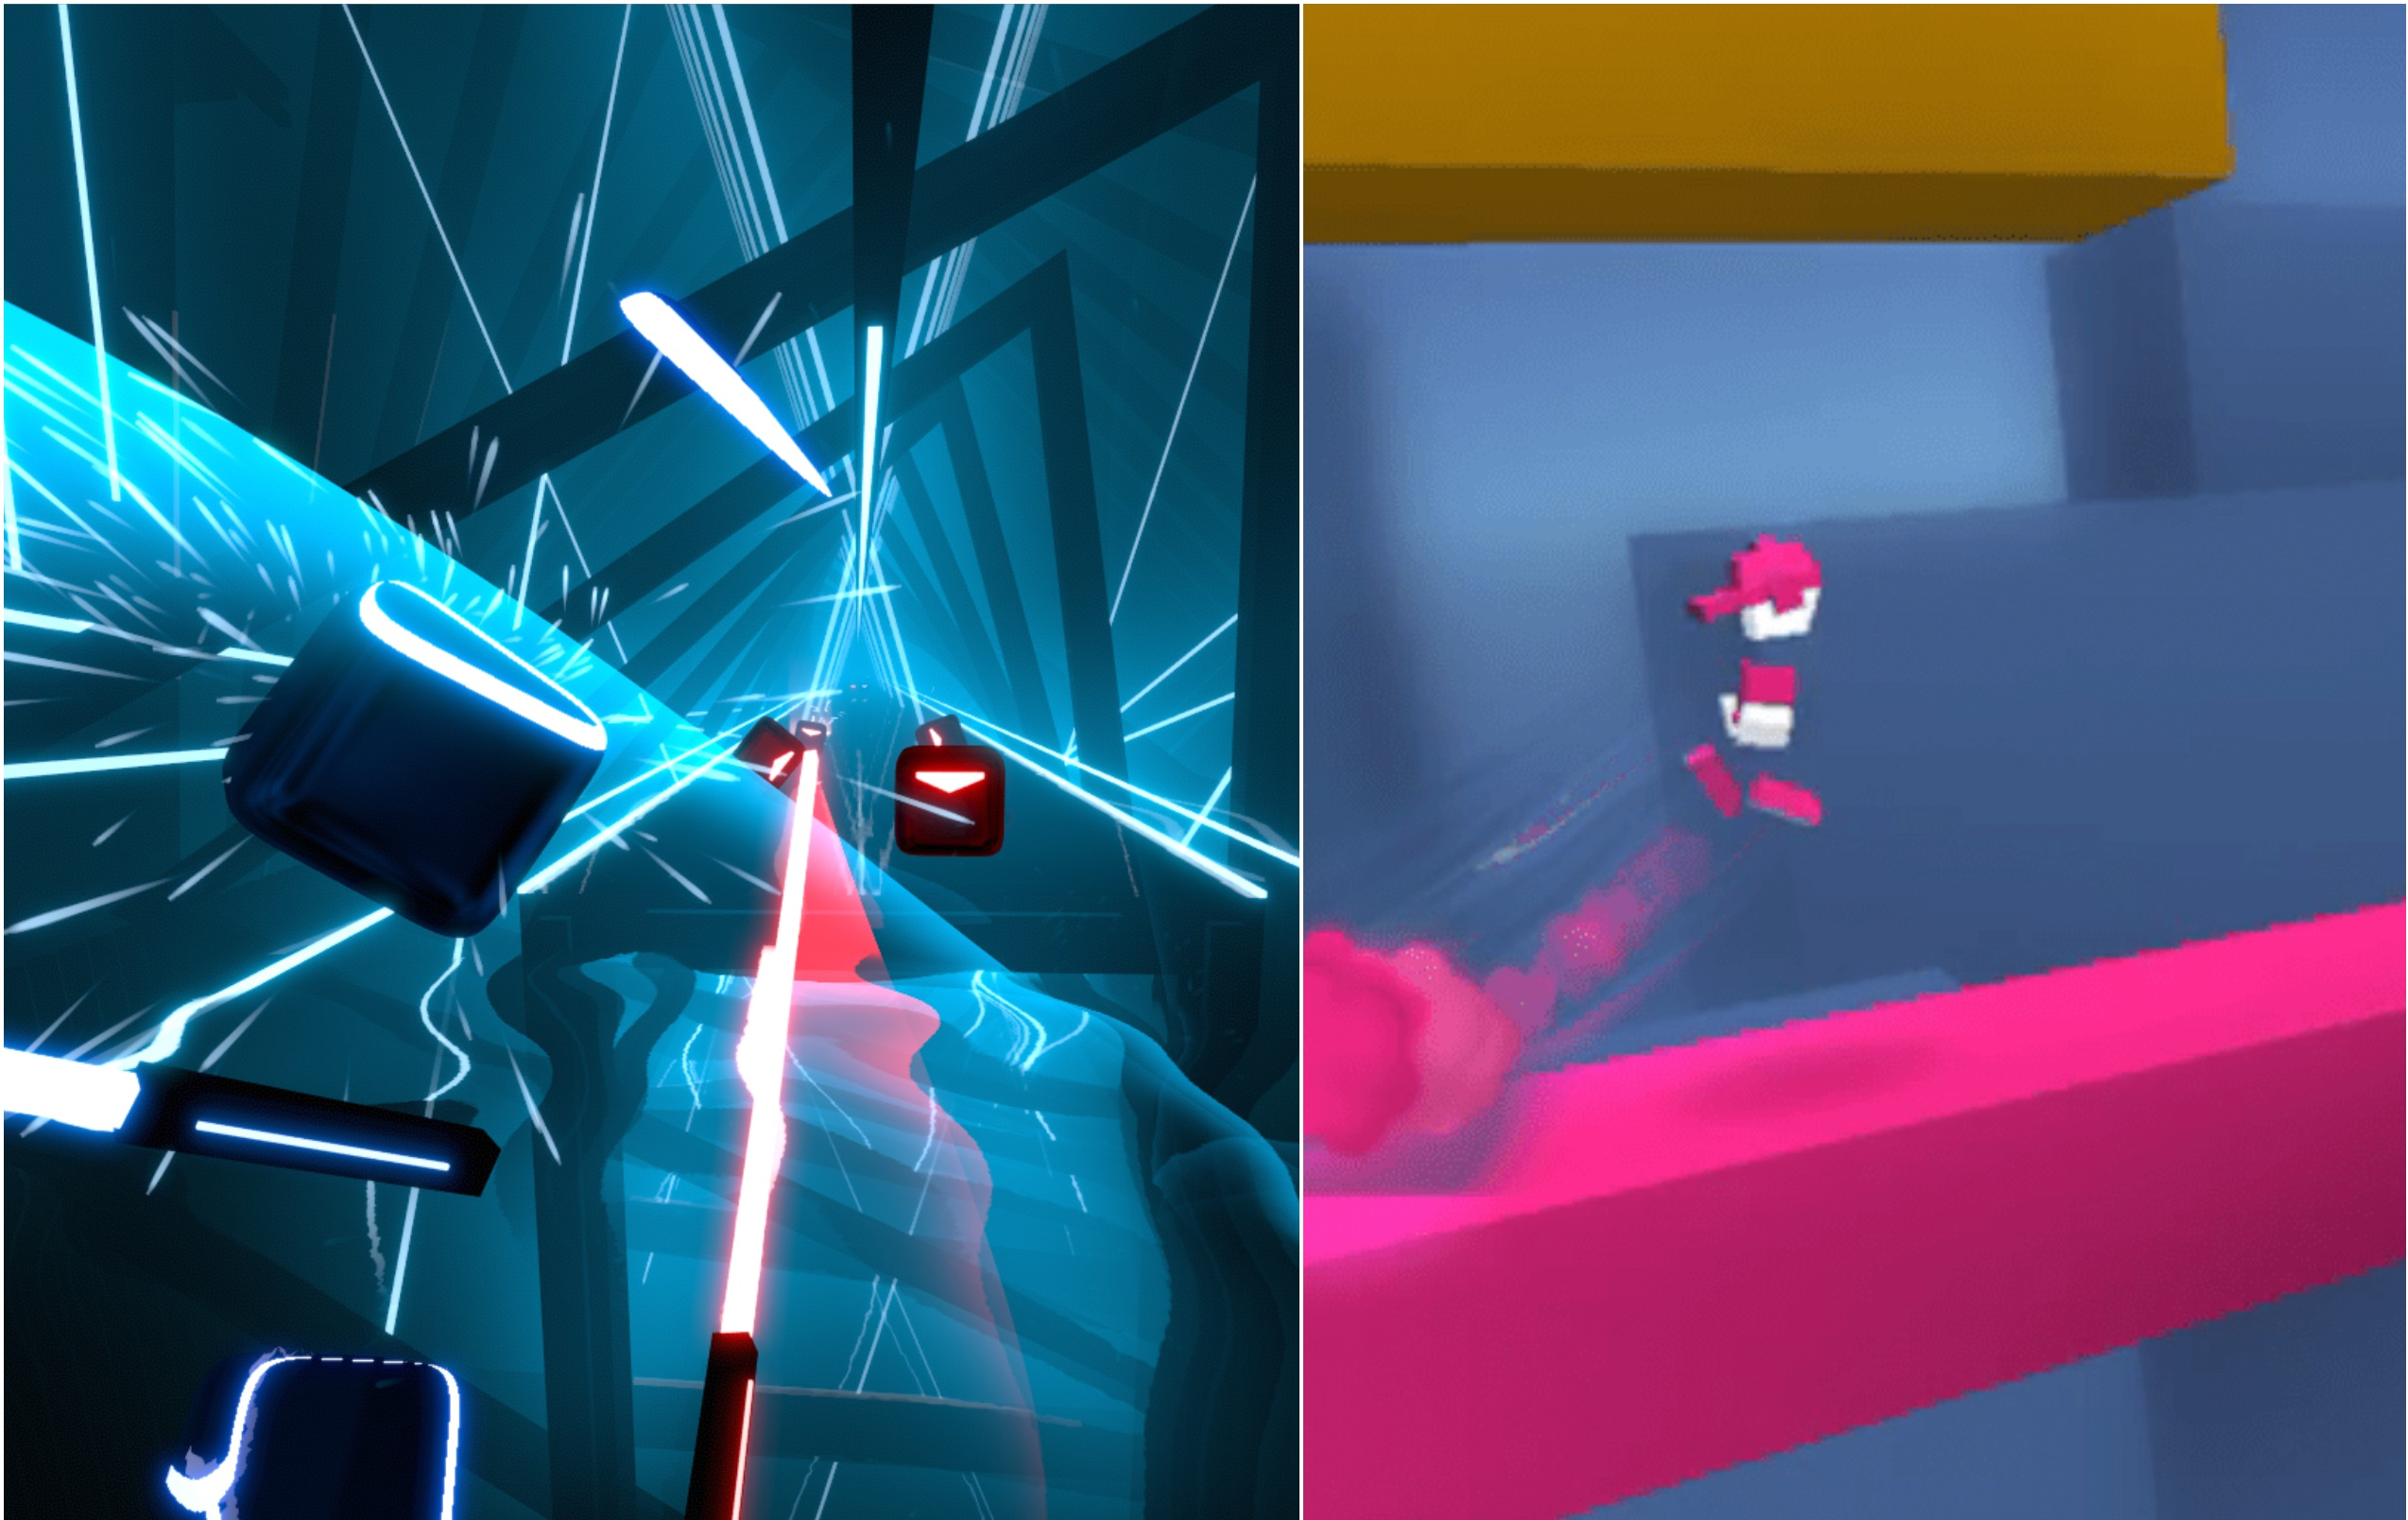 Escape With Me How A Mobile Phone Game Led To The Creation Of Beat Saber